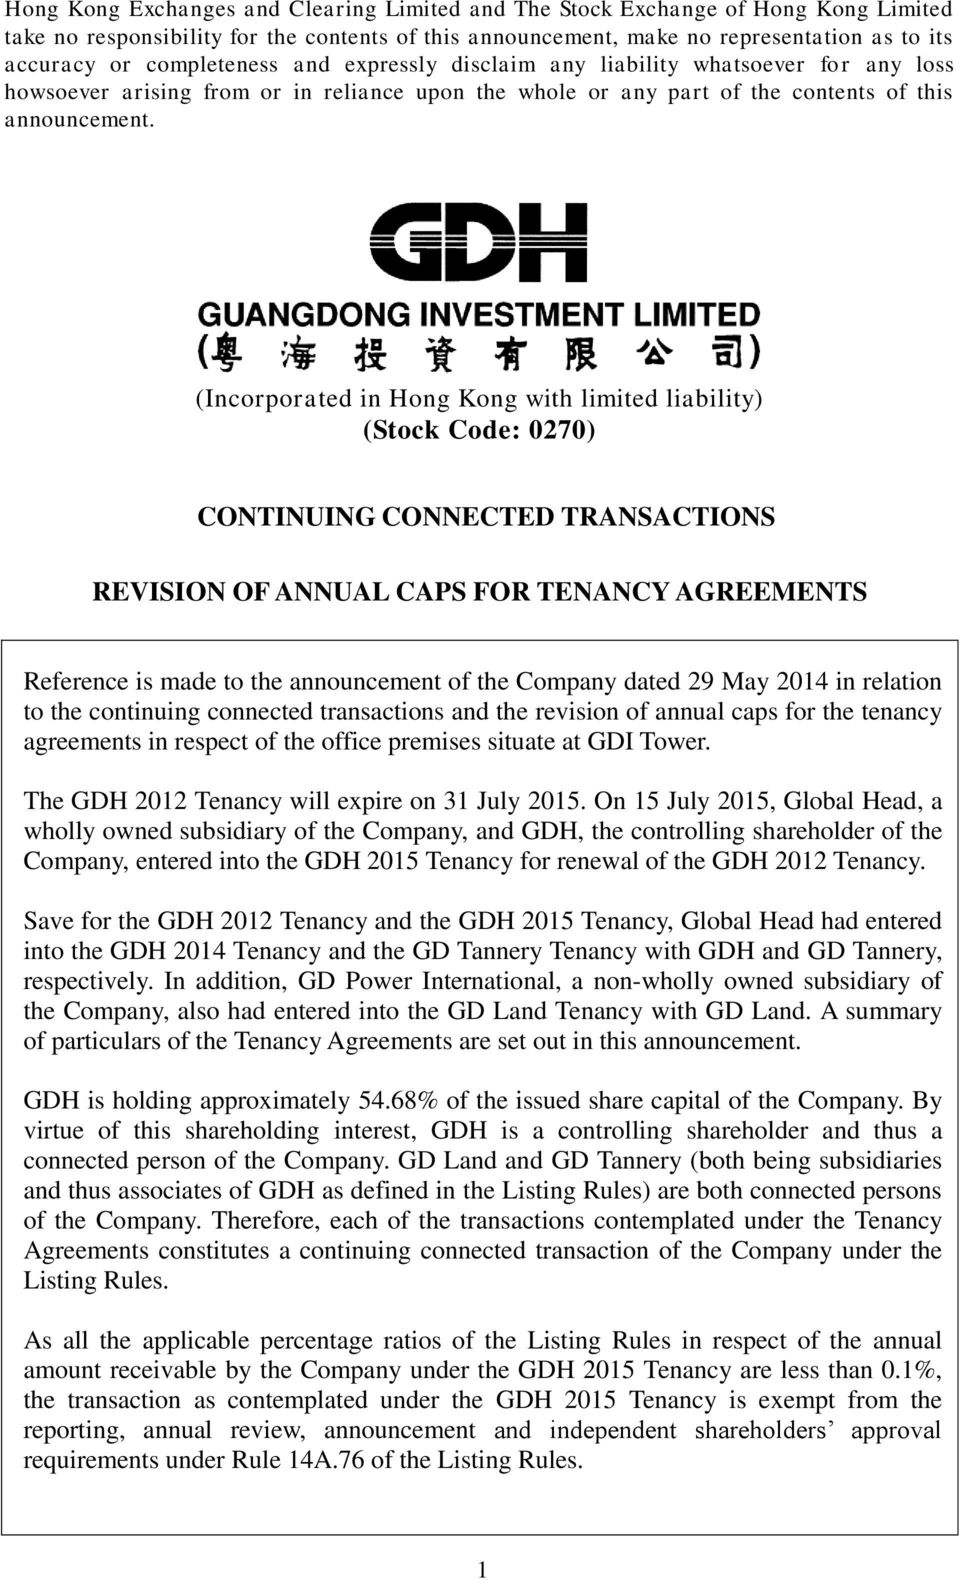 (Incorporated in Hong Kong with limited liability) (Stock Code: 0270) CONTINUING CONNECTED TRANSACTIONS REVISION OF ANNUAL CAPS FOR TENANCY AGREEMENTS Reference is made to the announcement of the